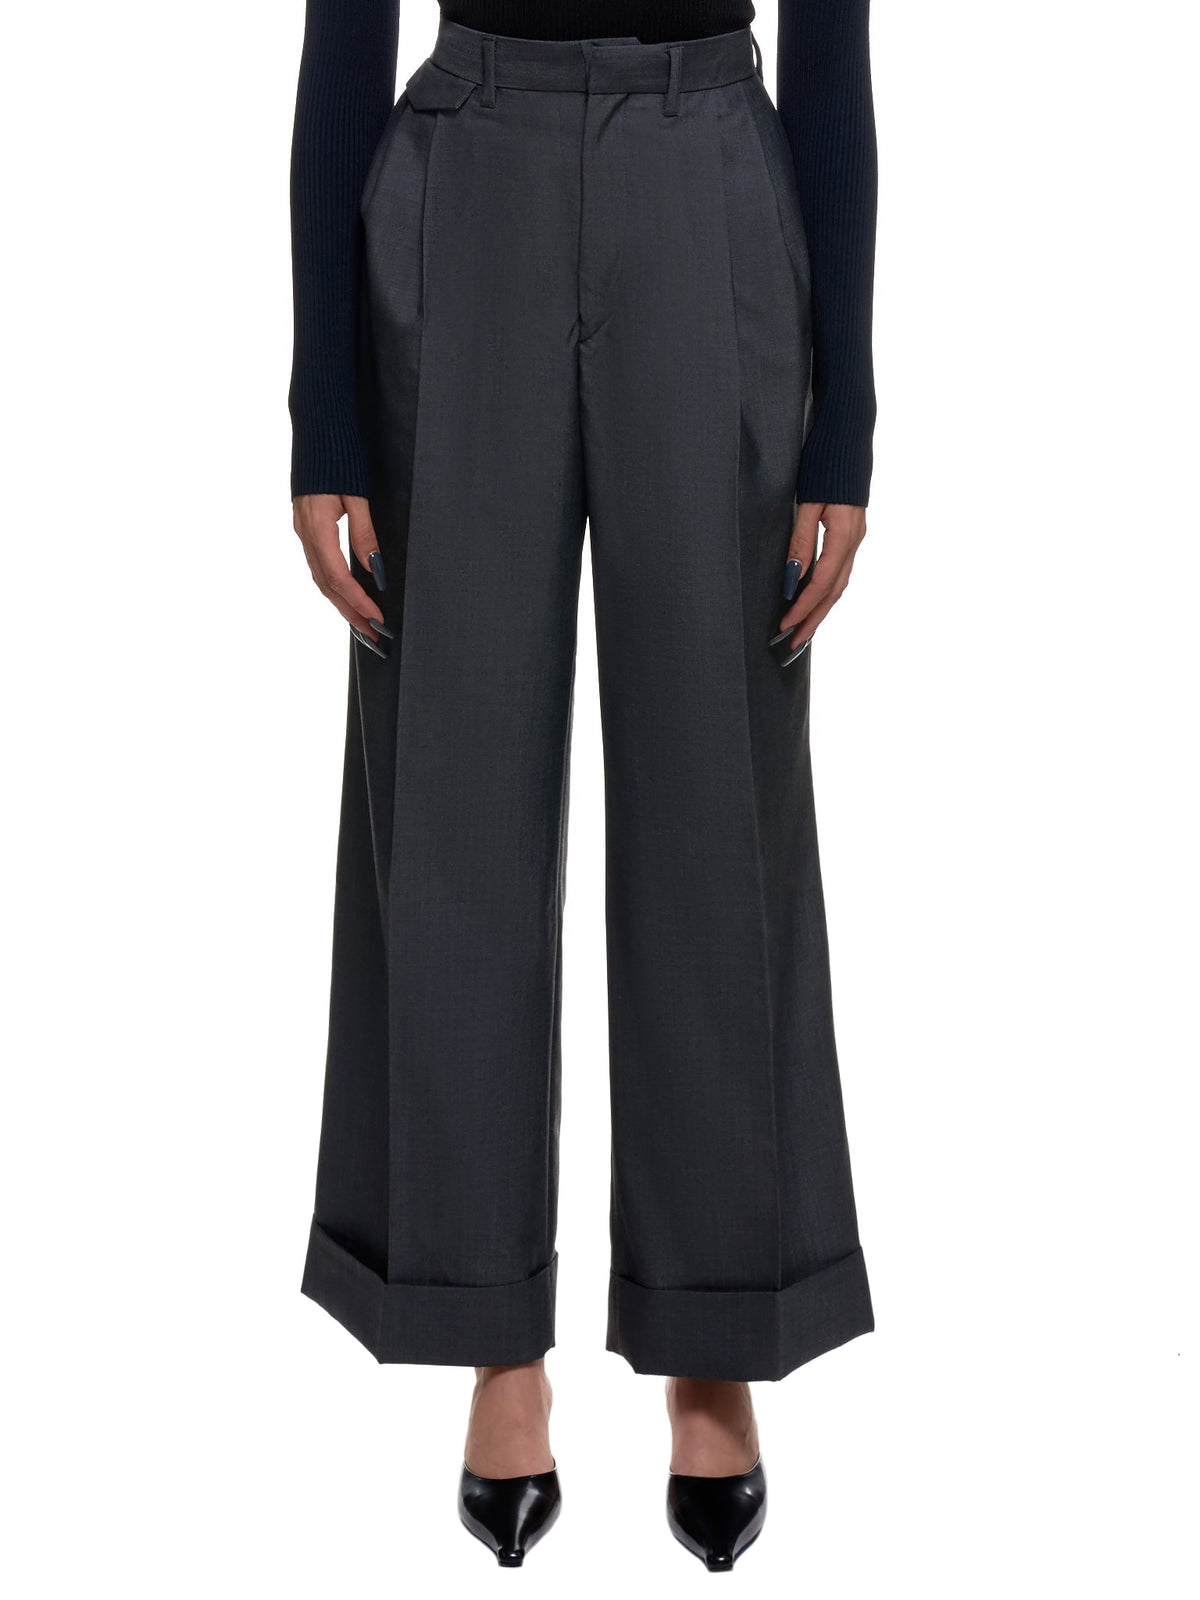 Toga Archives Pants | H.Lorenzo - front